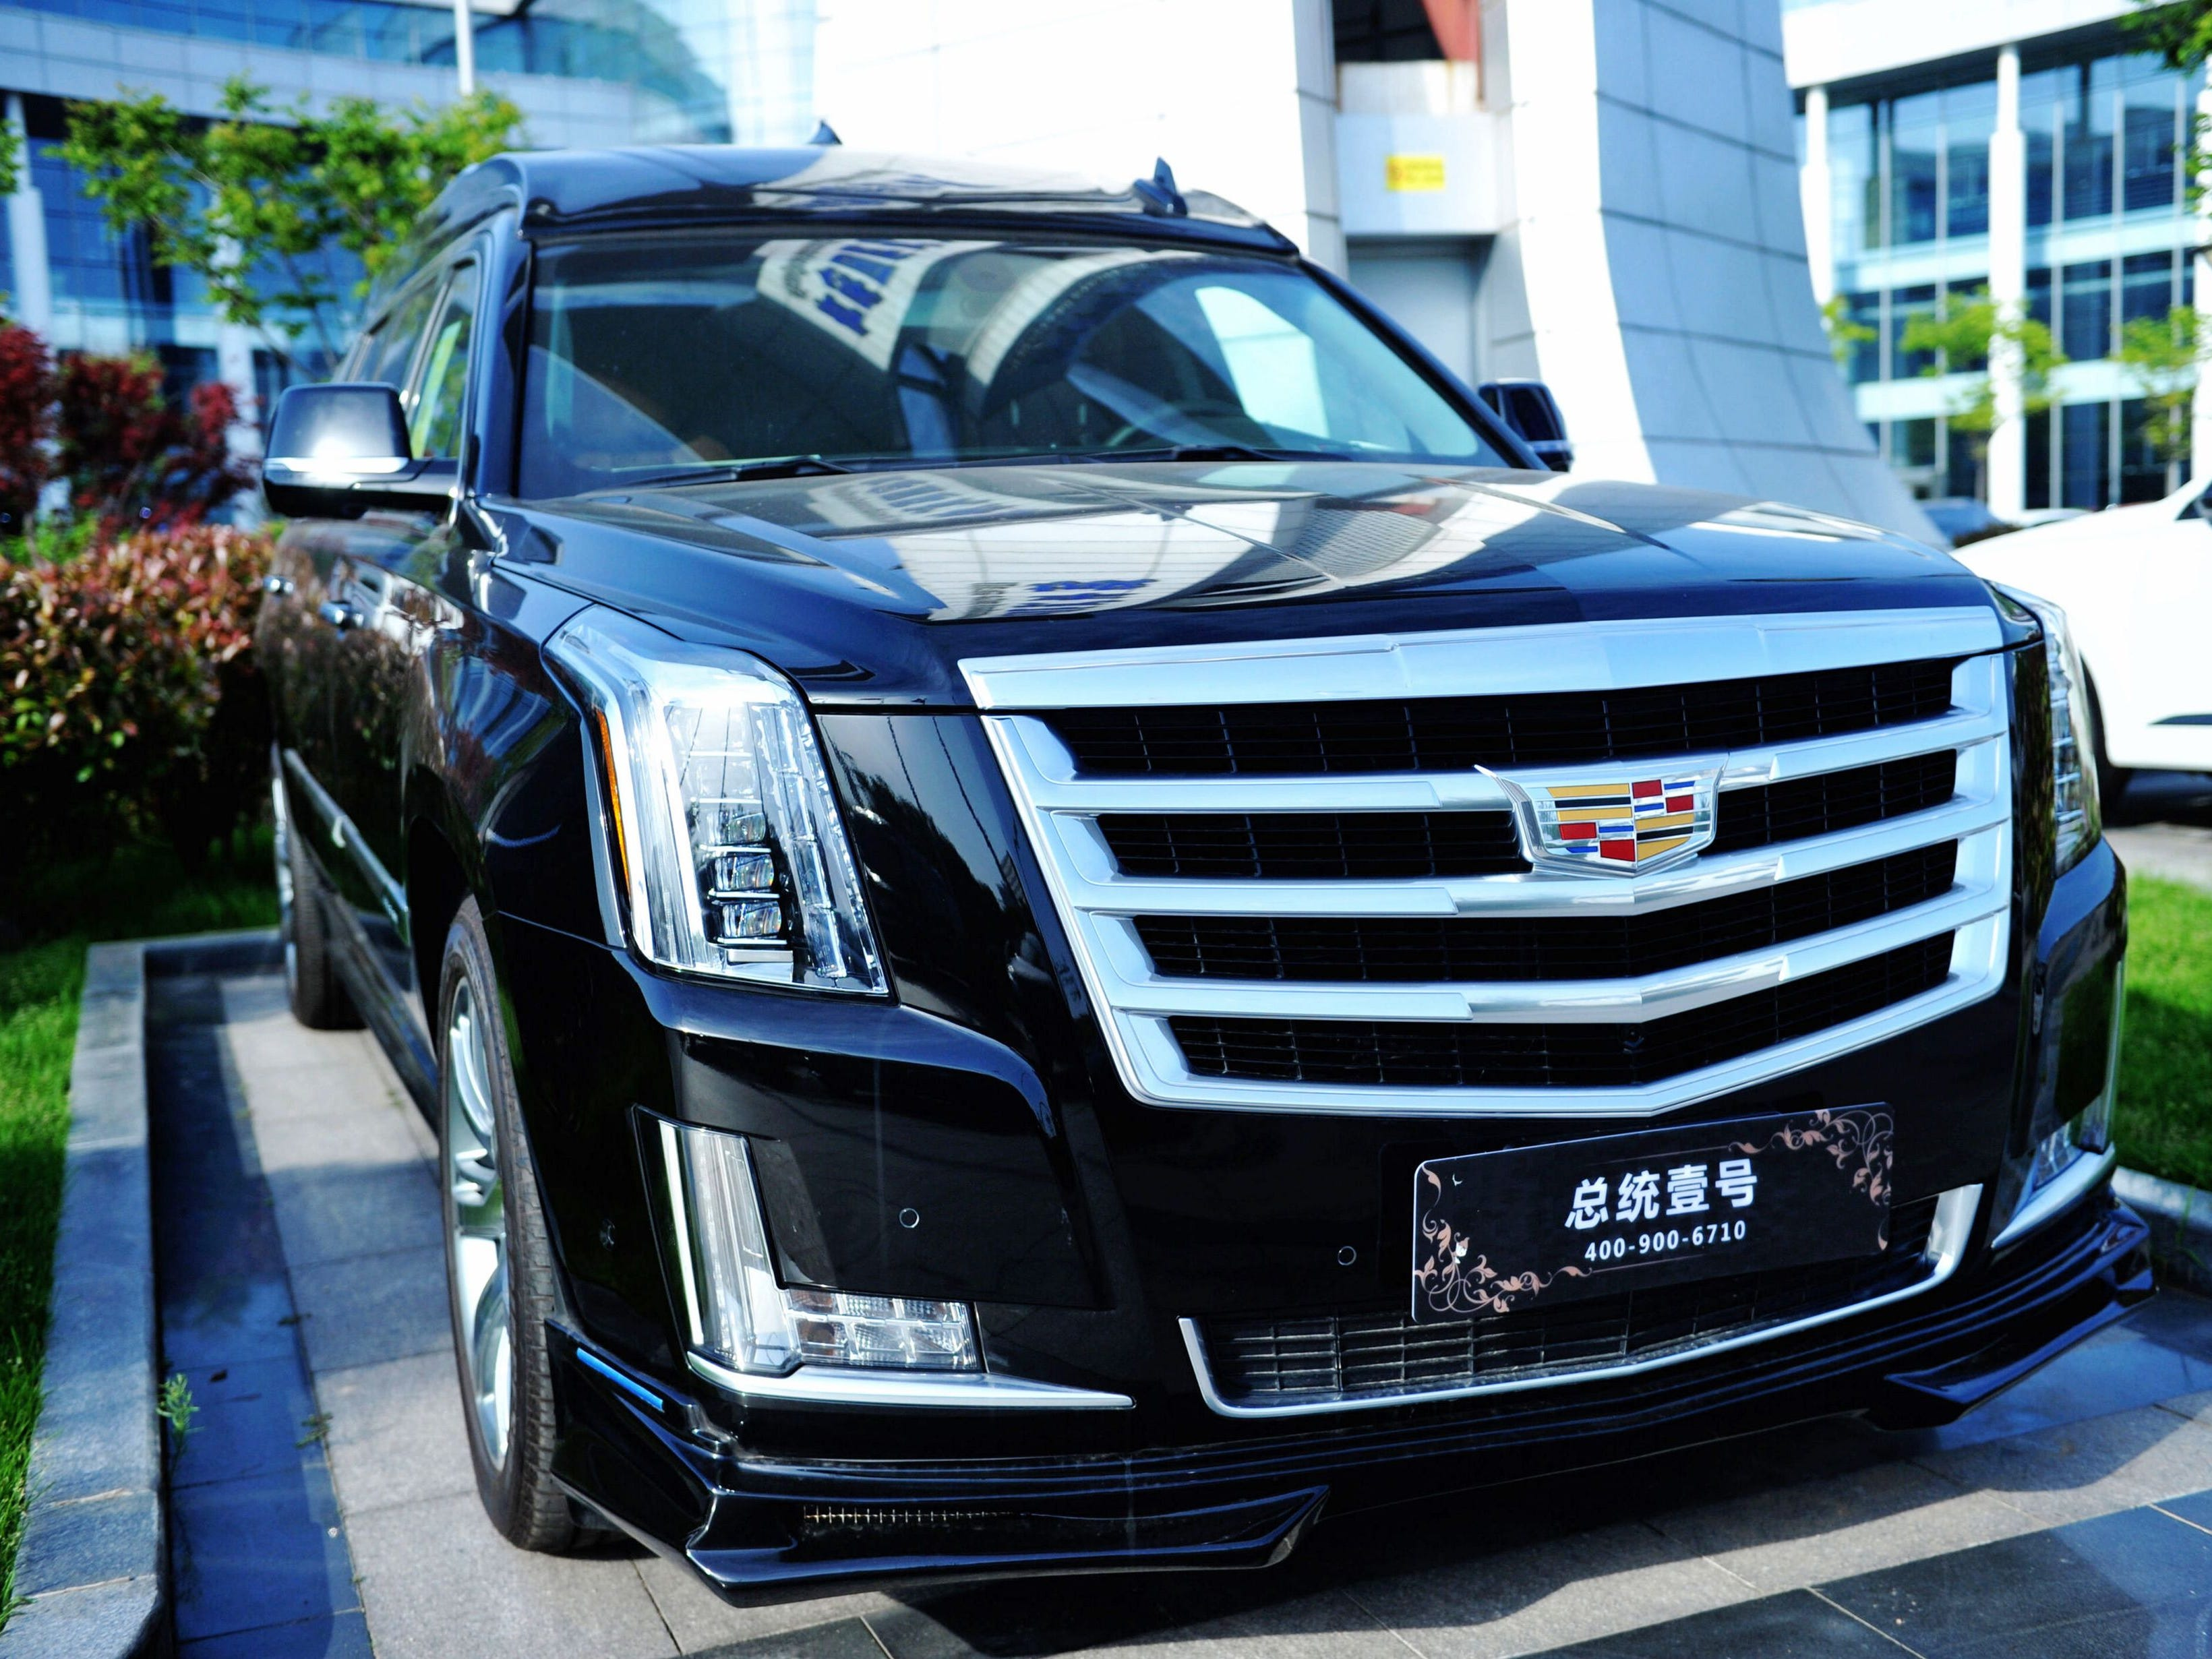 An imported Cadillac is displayed at Qingdao International Auto Mall in Qingdao in China's eastern Shandong province on May 23, 2018.